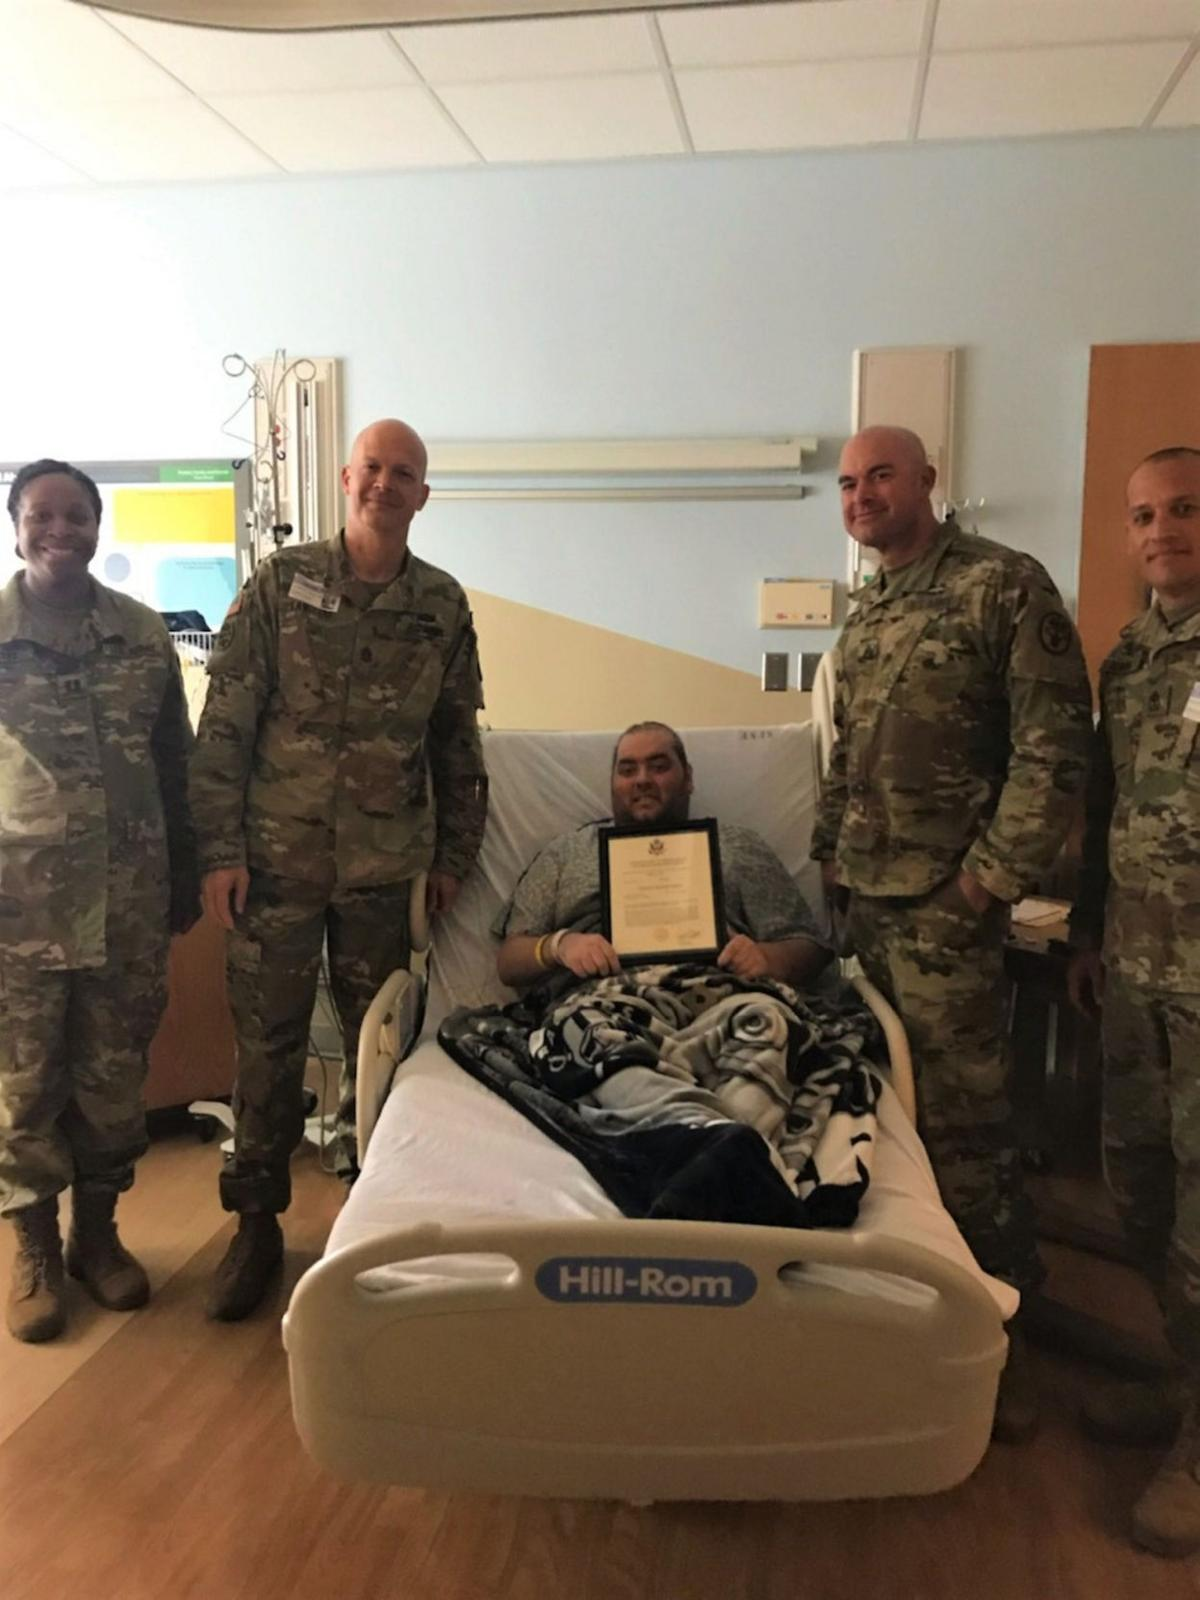 Church rallies to help soldier with cancer